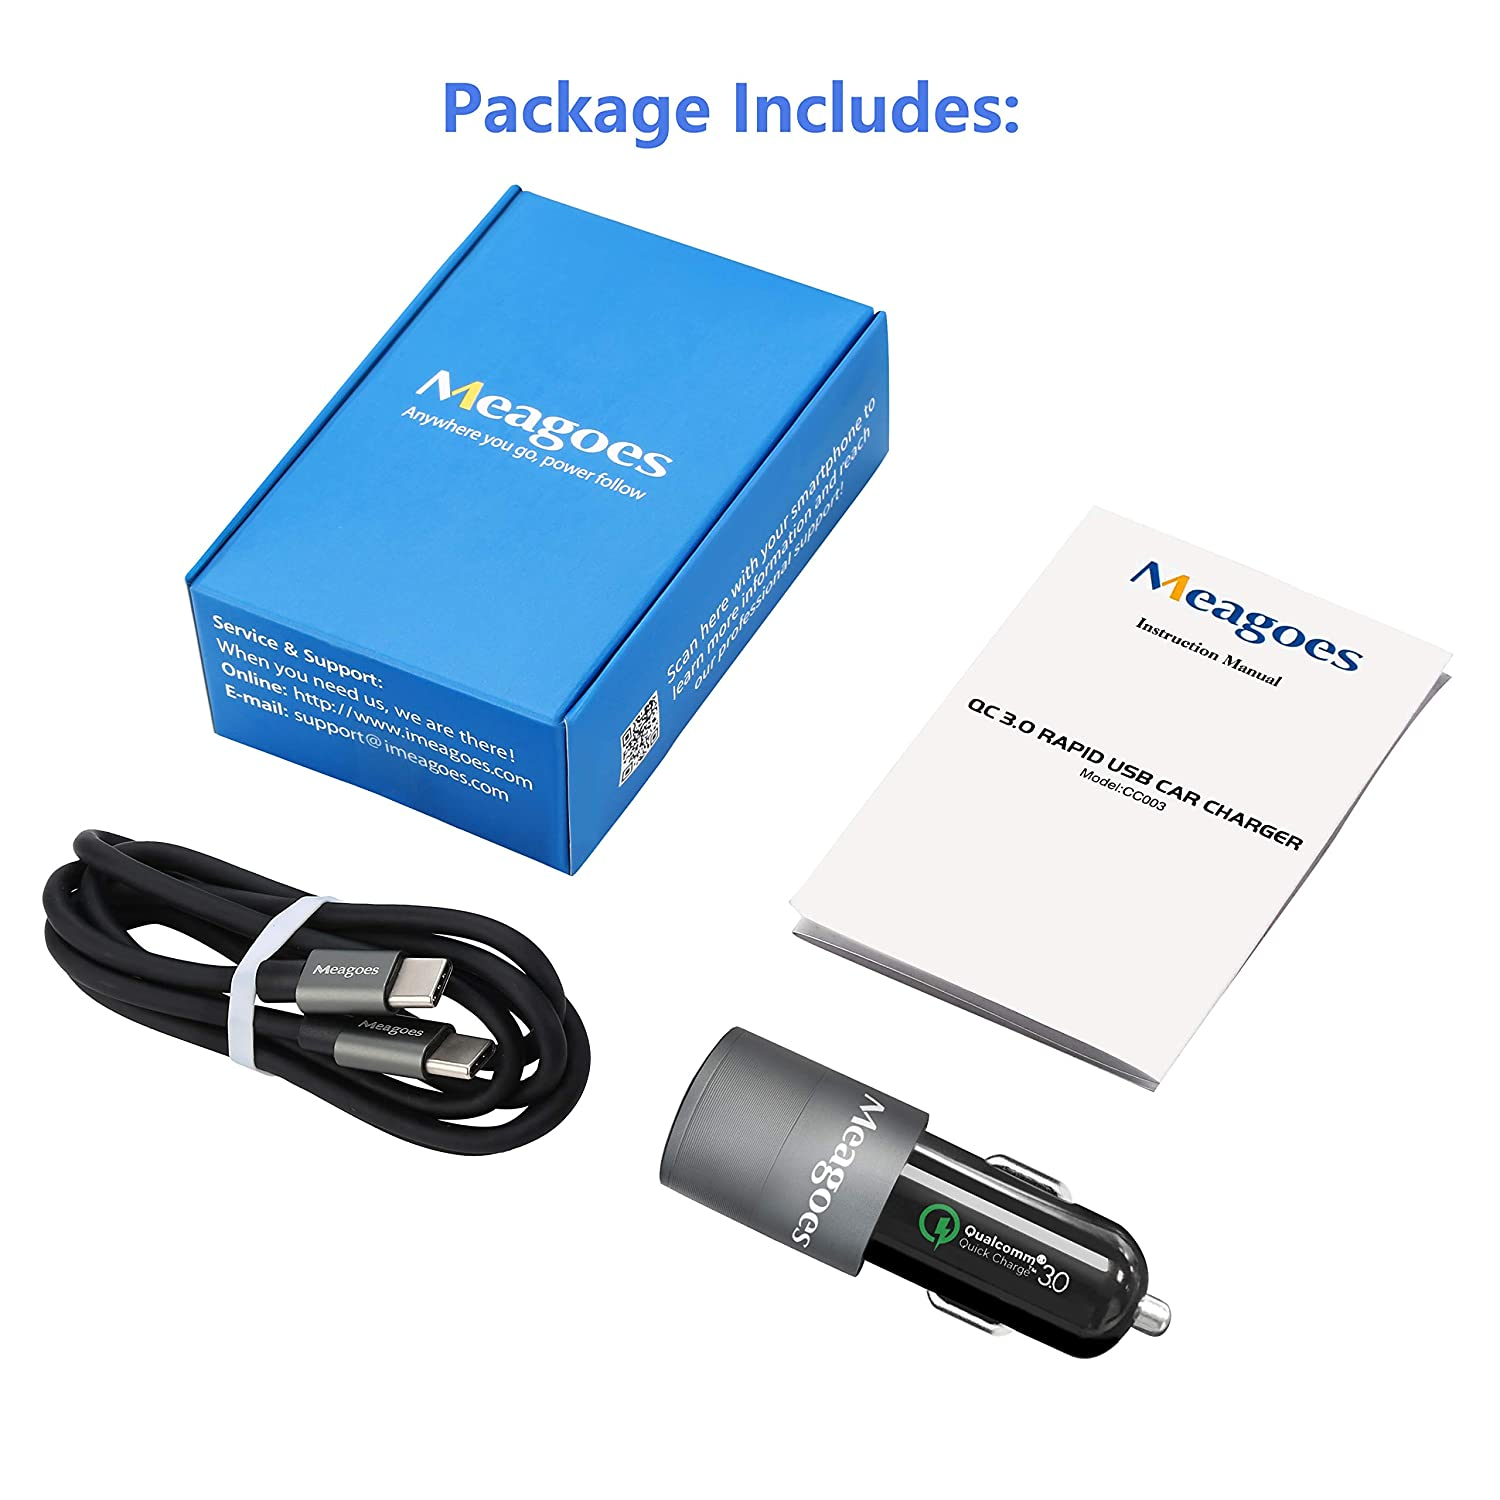 X4 Motorola Phone Z3 Play//Z3//Z2 Force//Z2 Play Dual Ports PD /& QC 3.0 Car Adapter with USB Type C to C Cord 4351538516 Meagoes Rapid Car Charger Compatible Moto G7 Plus//G7 Power//G7 Play//G7//G6 Plus//G6